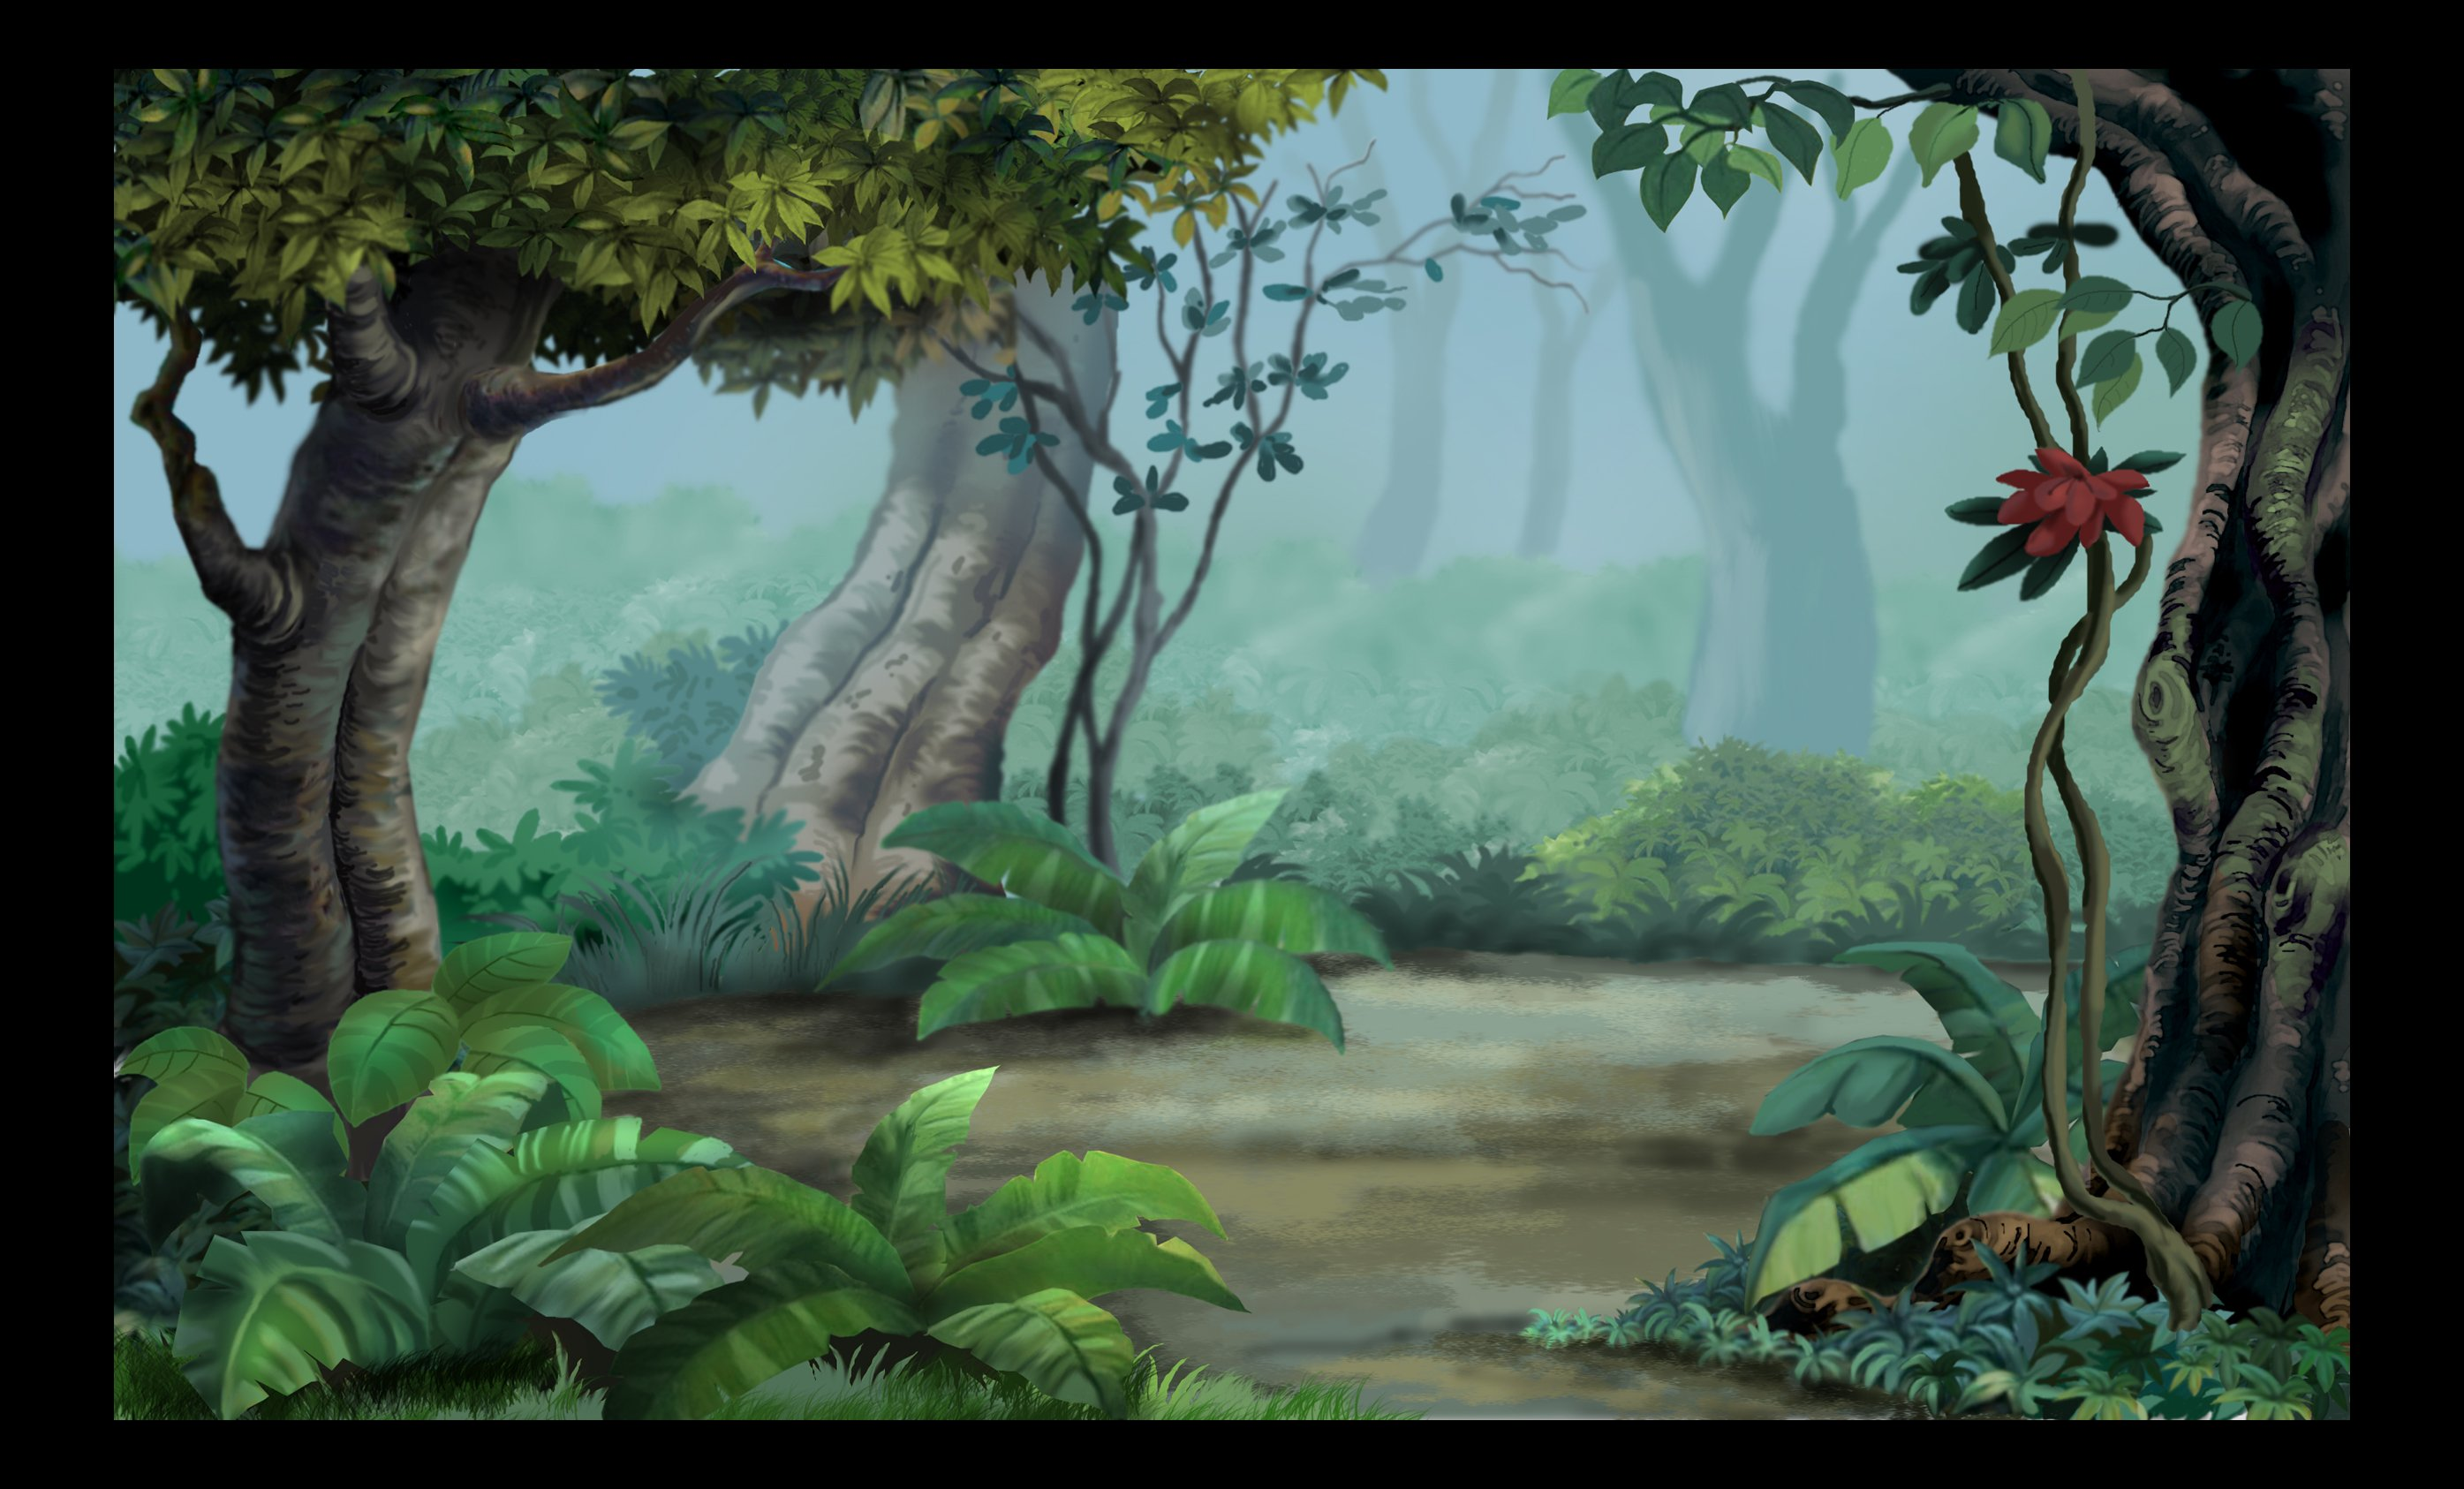 Jungle Book Characters - Cartoon Images